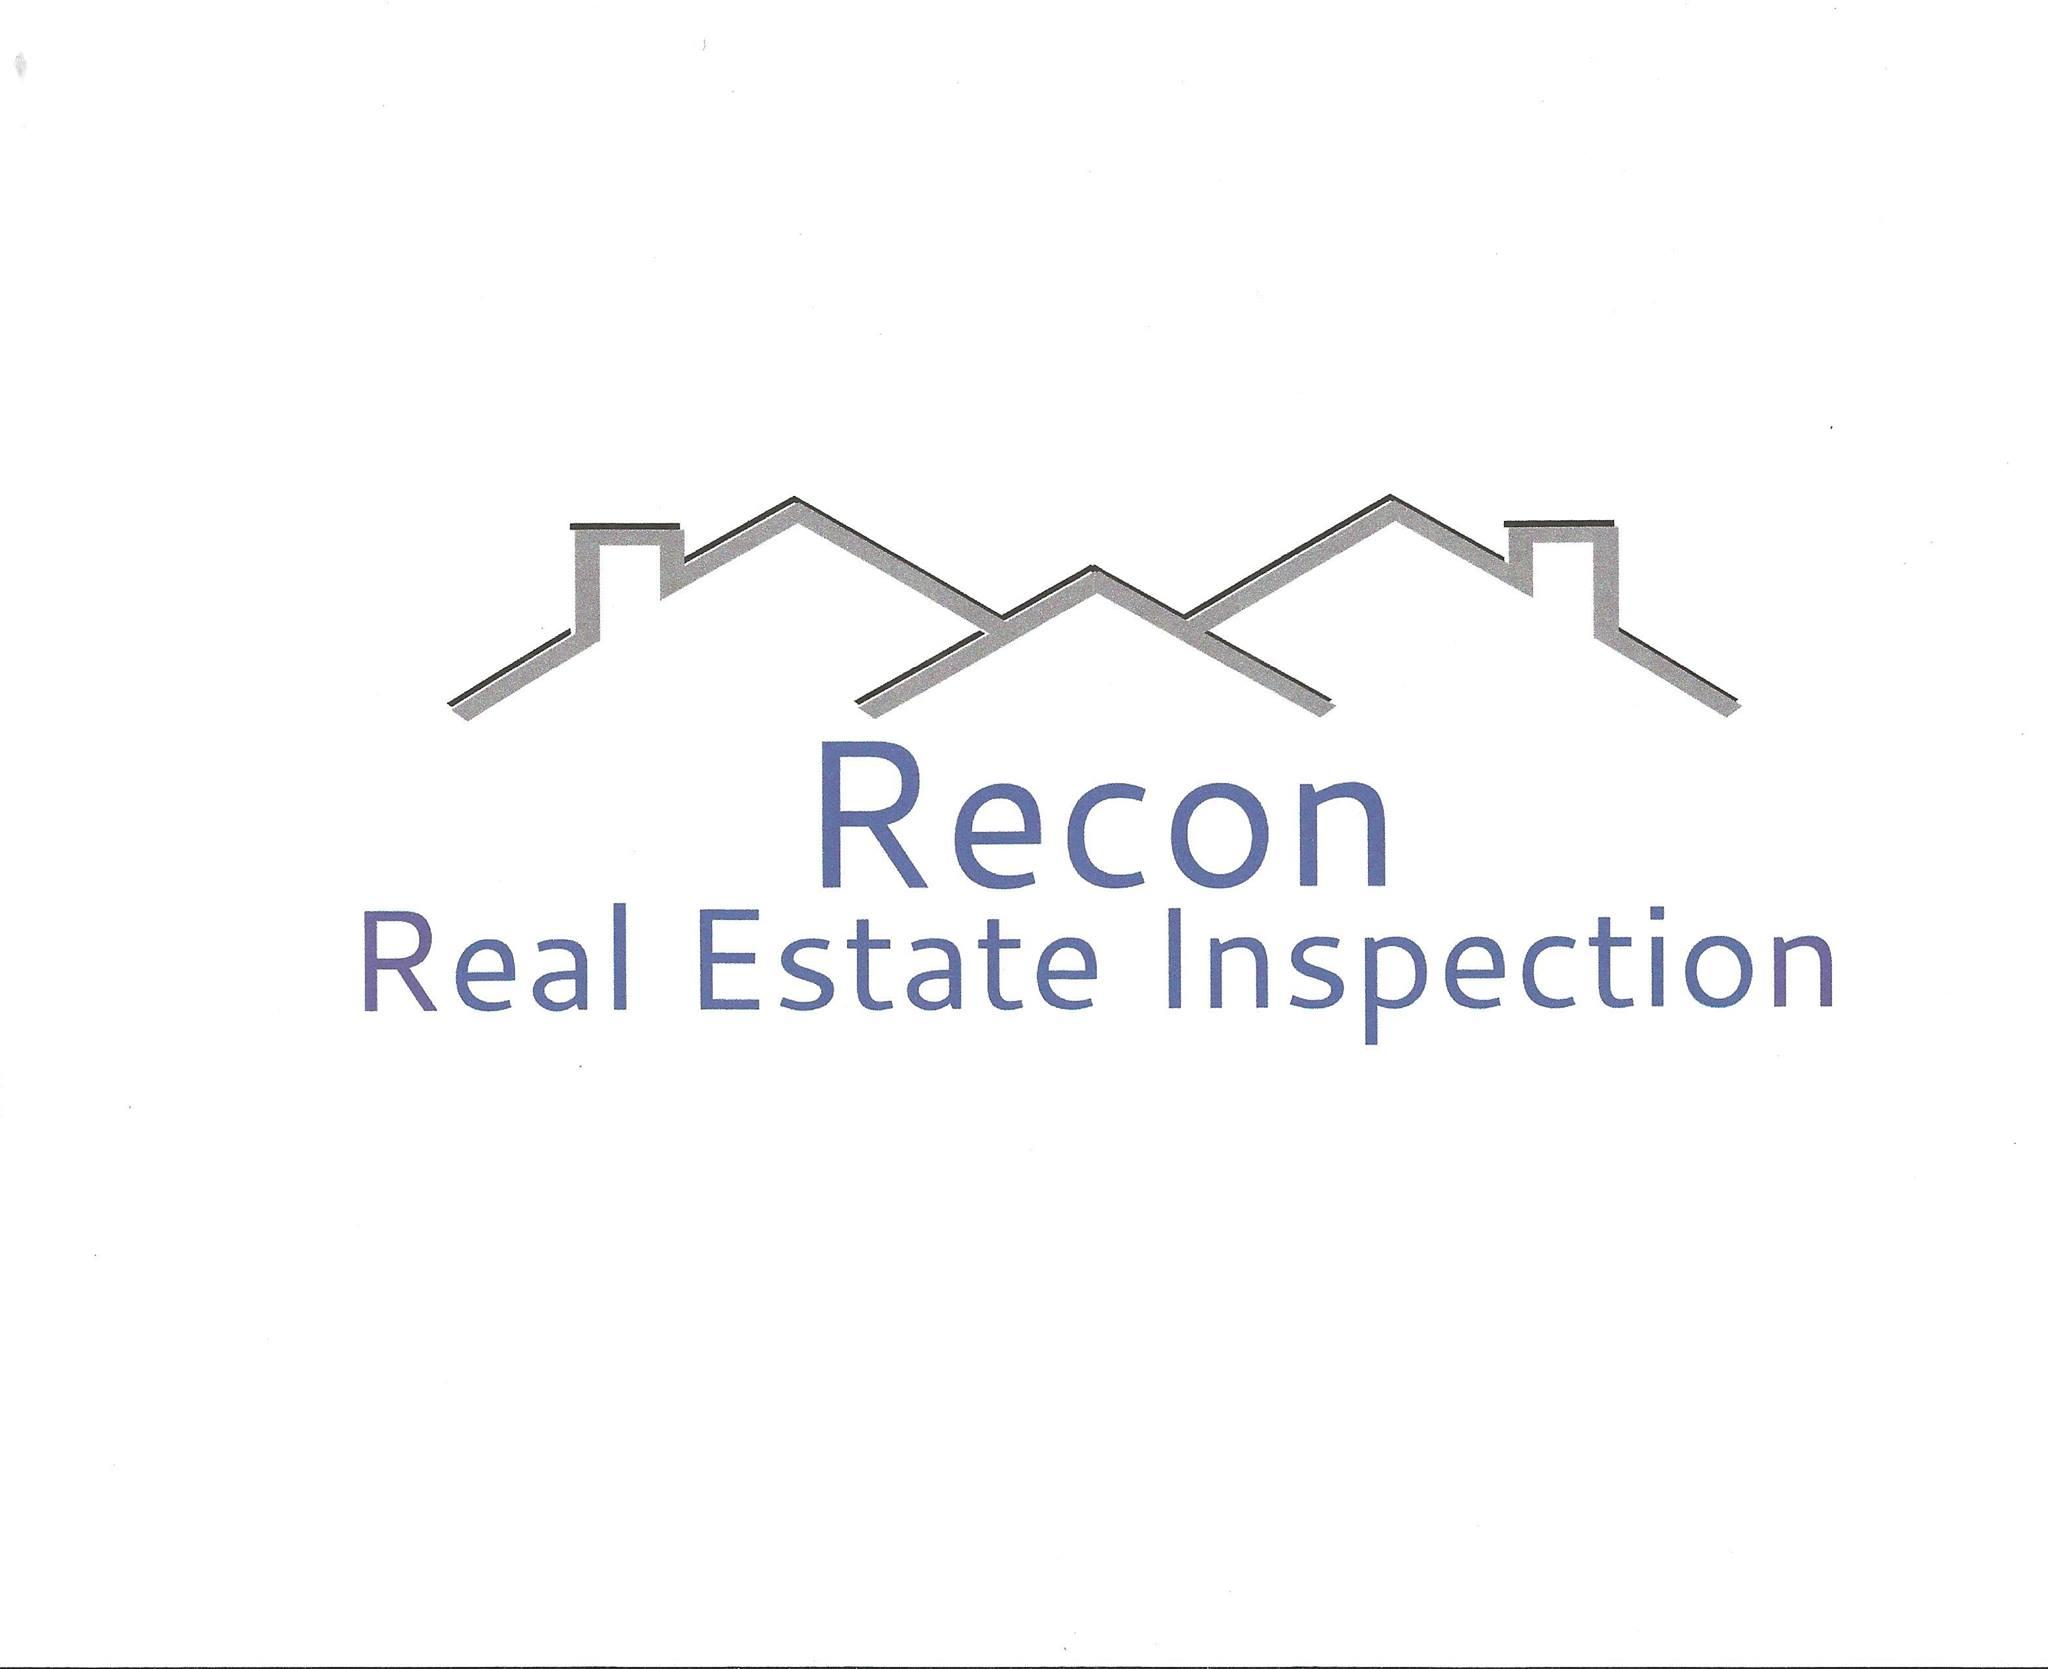 Recon Real Estate Inspection